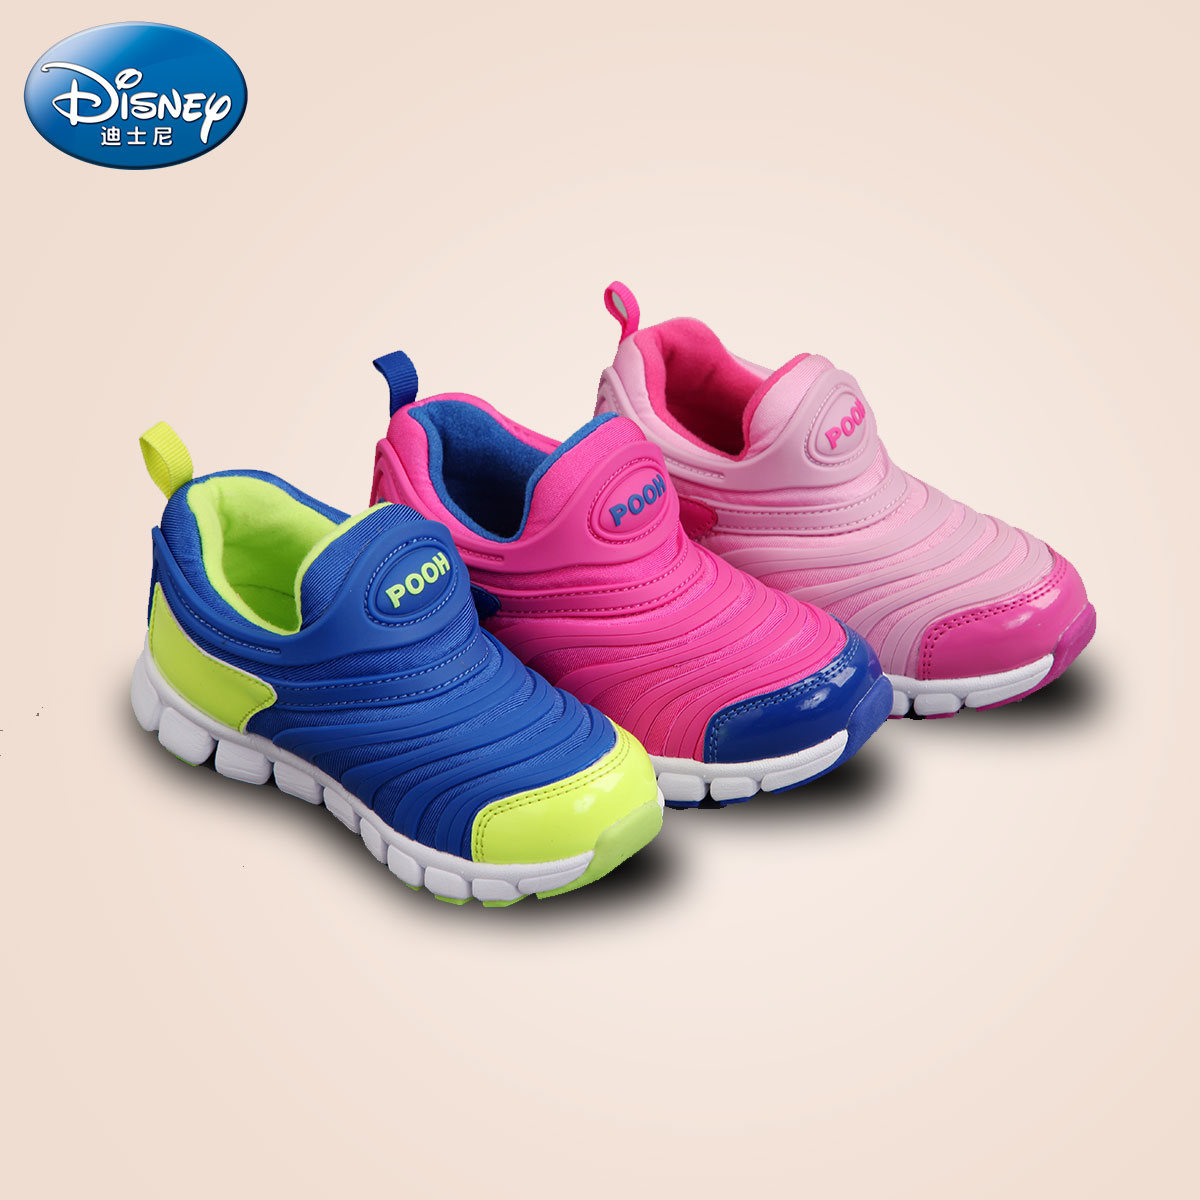 Disney/disney children's shoes caterpillar shoes boys and girls in children sports shoes plus velvet autumn and winter shoes